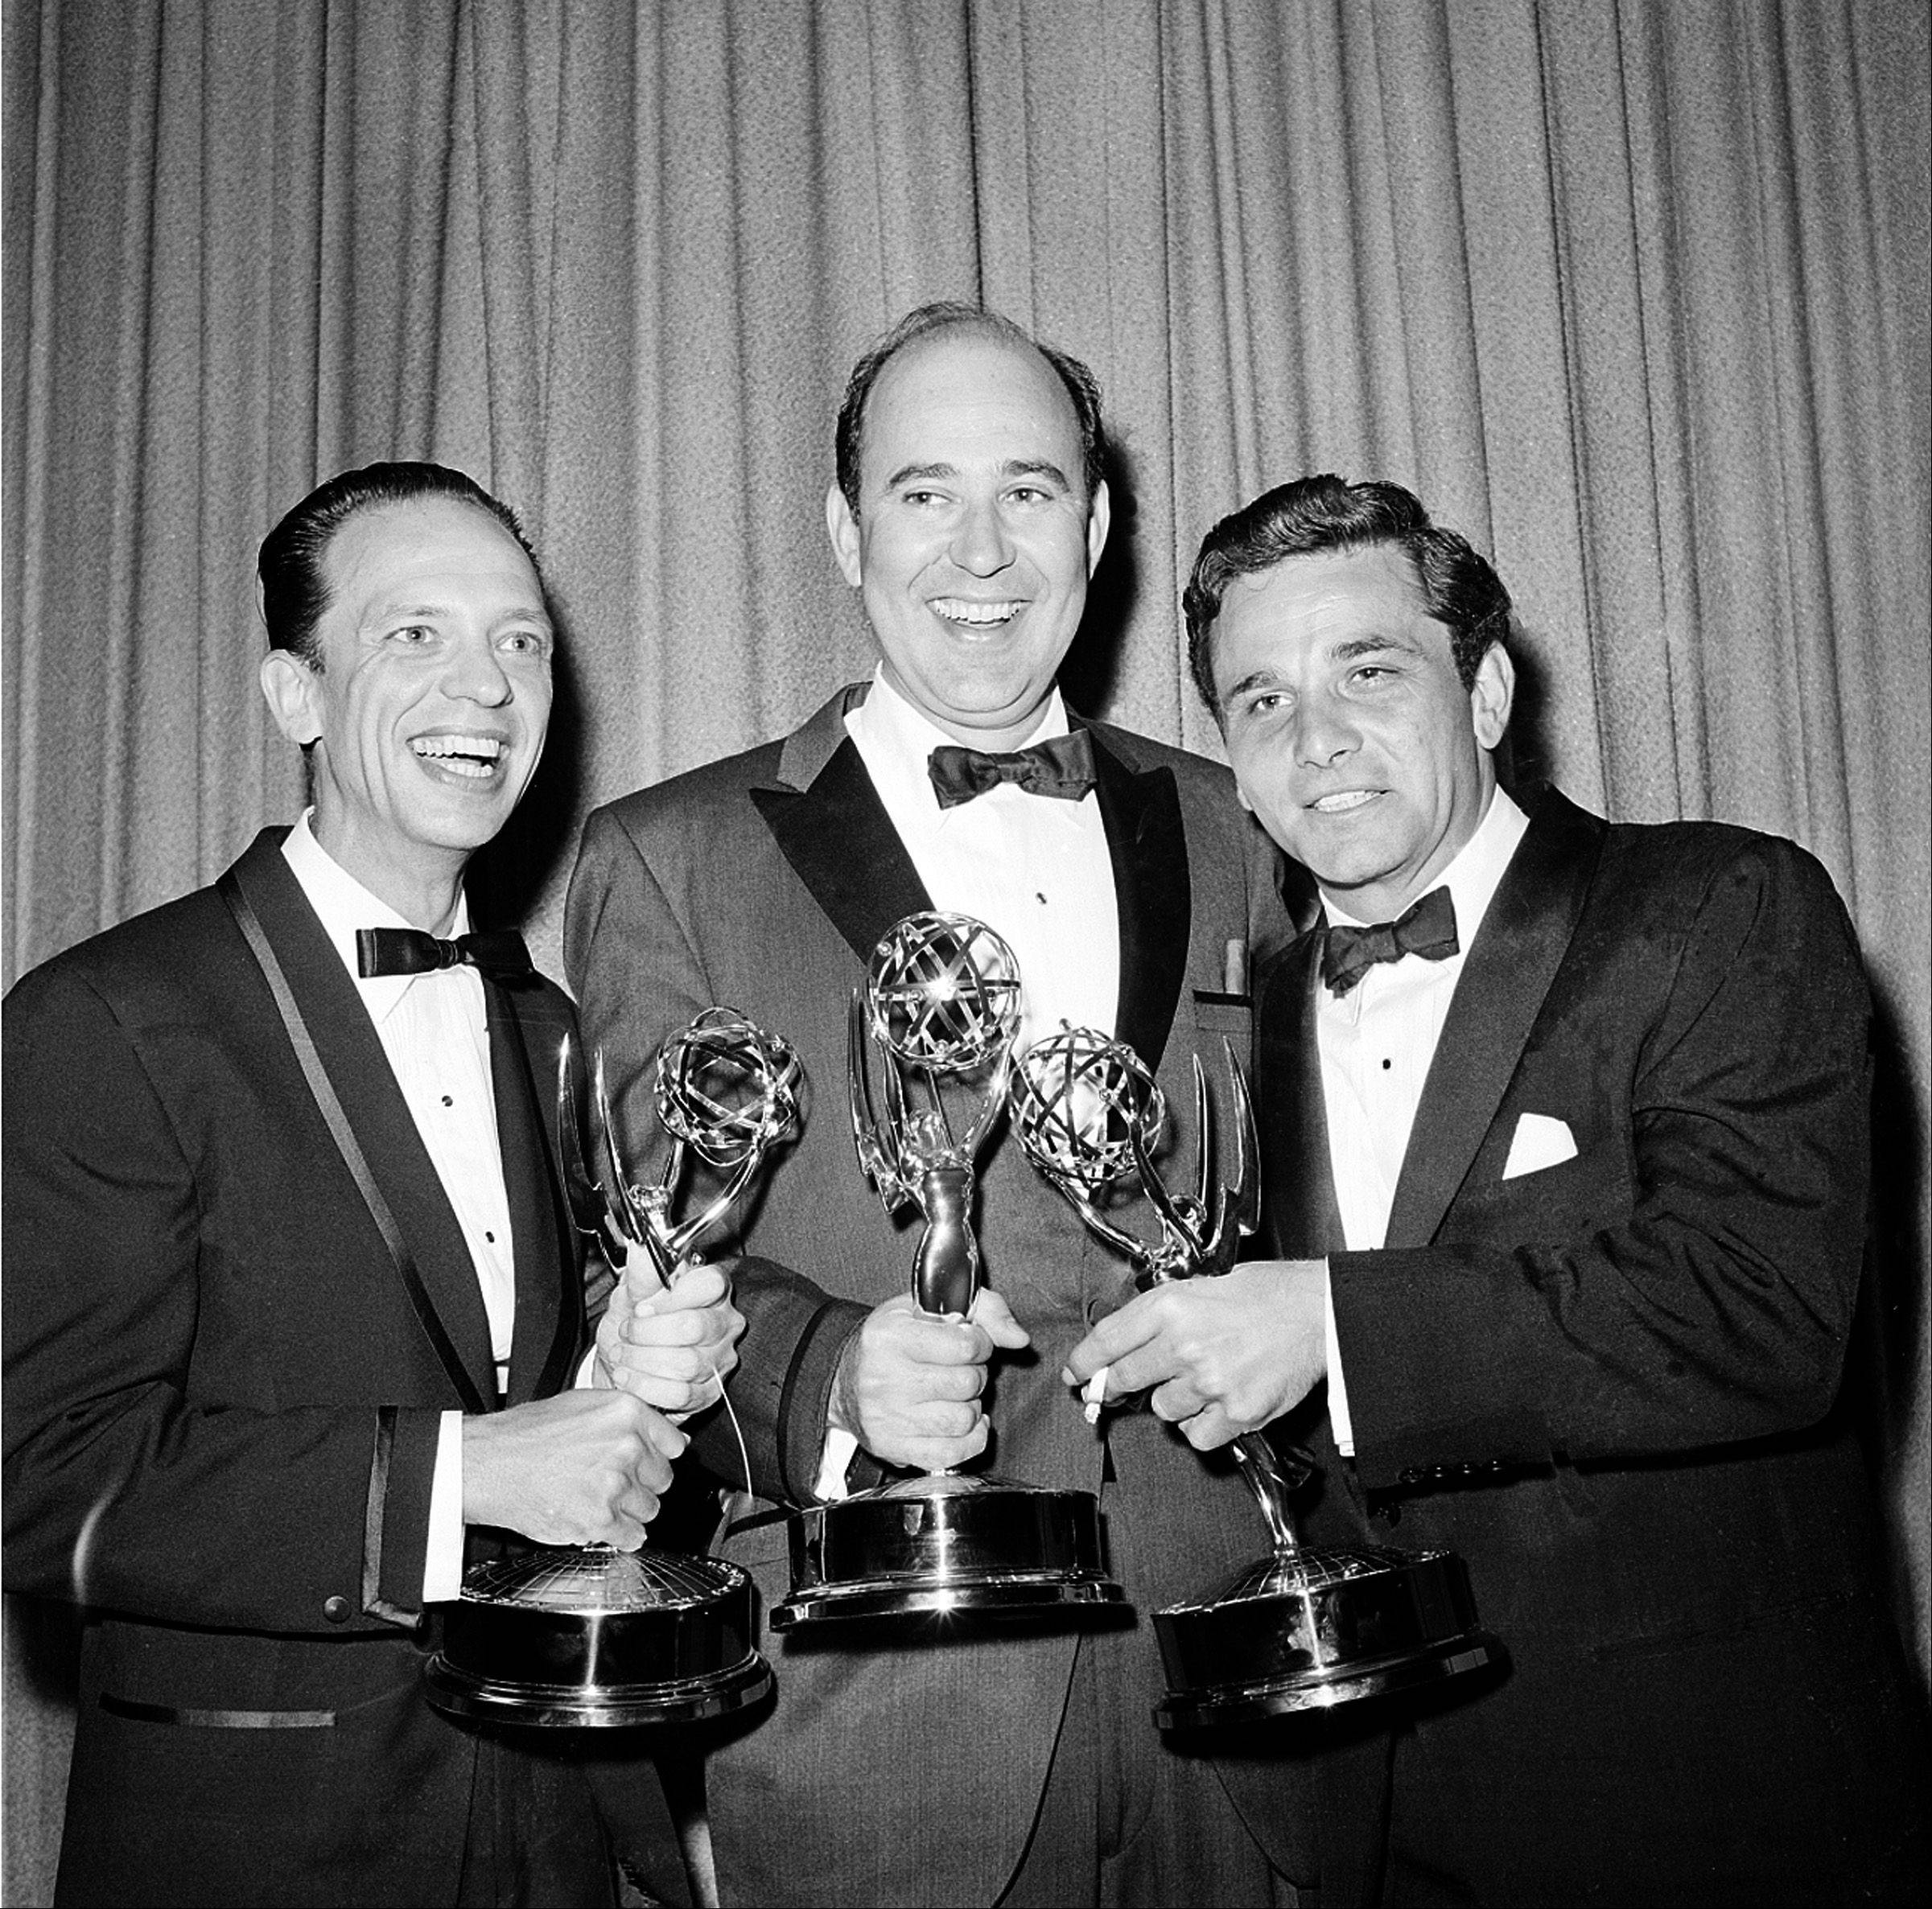 "Writer Carl Reiner, center, poses with actors Don Knotts, left, and Peter Falk as they hold their statuettes at the Emmys Awards in Hollywood, Ca., May 22, 1962. Knotts was named outstanding performance in a supporting role by an actor in ""The Andy Griffith Show""; Reiner won outstanding writing achievement in comedy for the ""Dick Van Dyke Show""; and Falk was named outstanding single performance by an actor in a leading role in ""The Dick Powell Show, The Price of Tomatoes."""